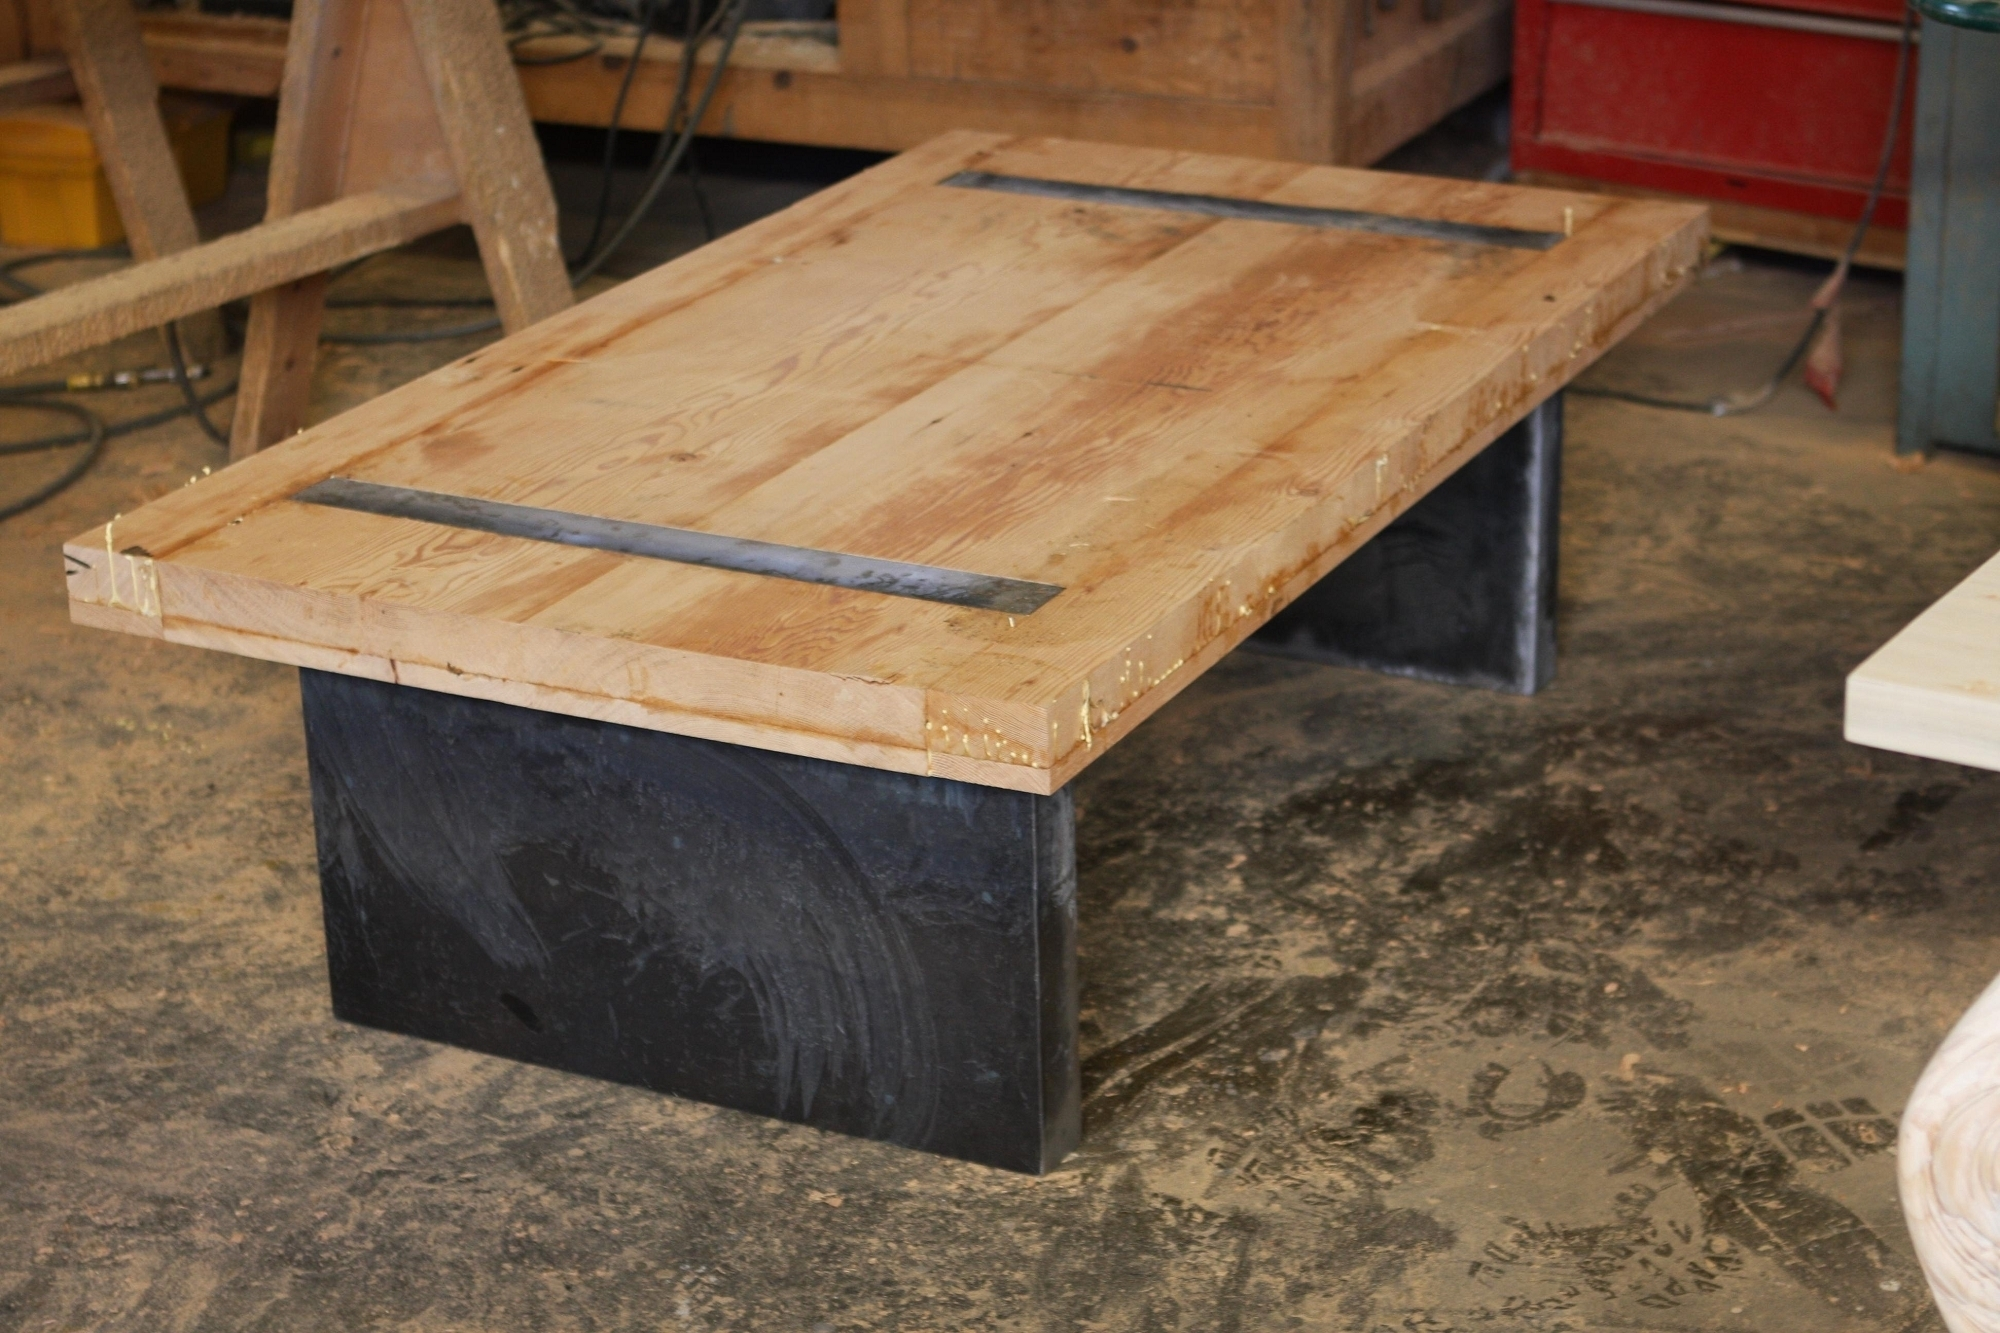 Modern Rustic Coffee Table - Coffee Table Ideas throughout Modern Rustic Coffee Tables (Image 12 of 30)